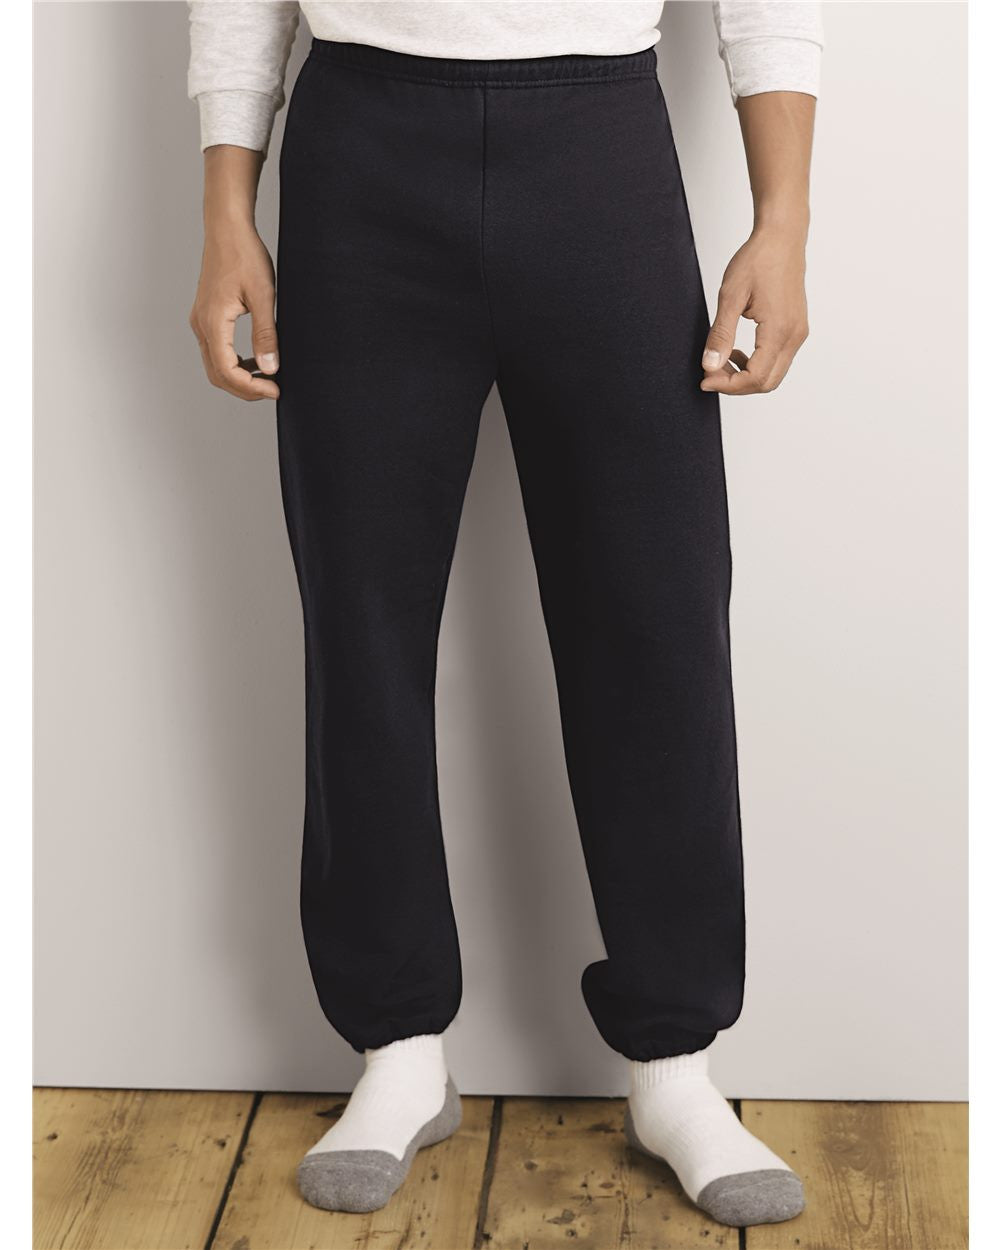 Heavy Sweatpants - Discountedrack.com